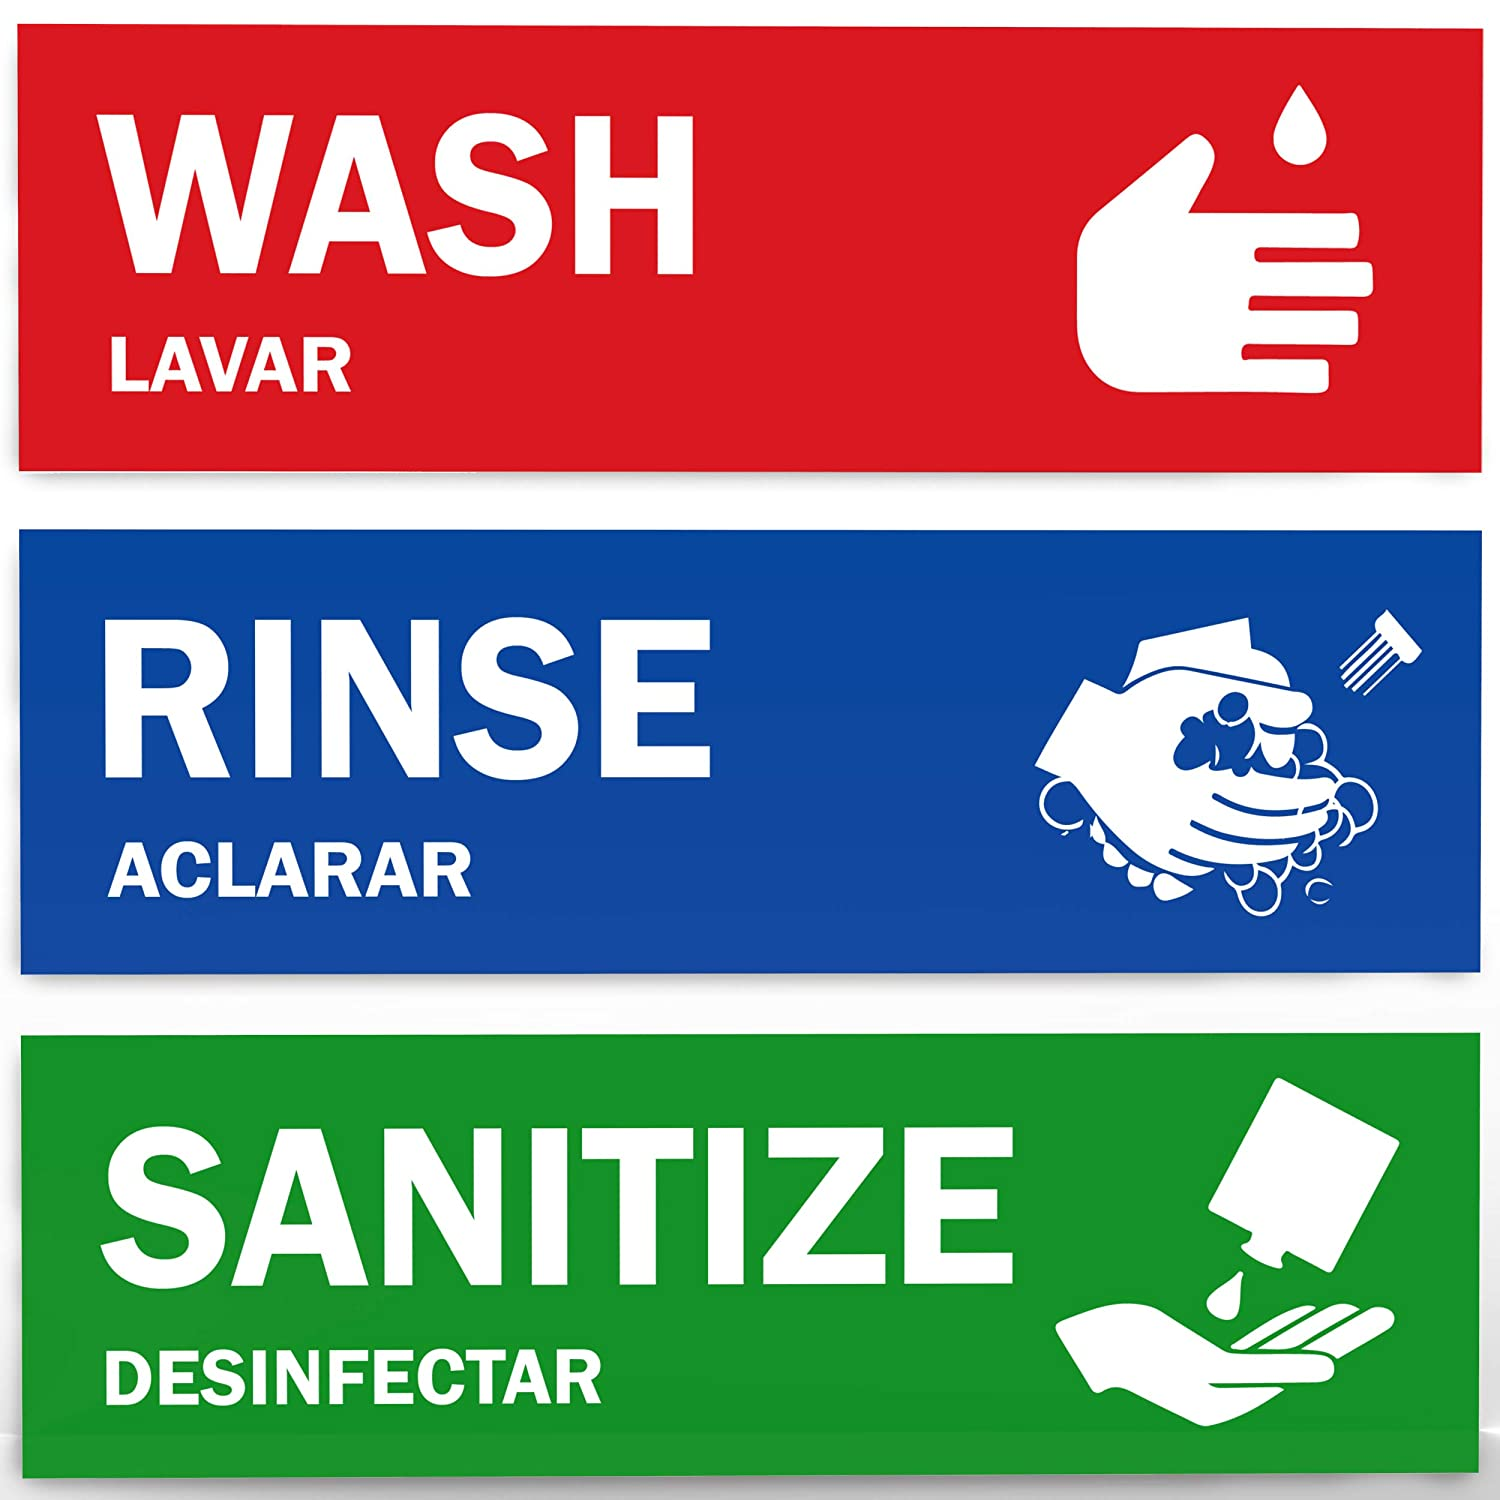 "Wash, Rinse, Sanitize Sink Labels - Ideal for 3 Compartment Sink - 2.75"" x 9"" - Perfect Sticker Signs for Restaurants, Commercial Kitchens, Food Trucks, Bussing Stations, Dishwashing or Wash Station"